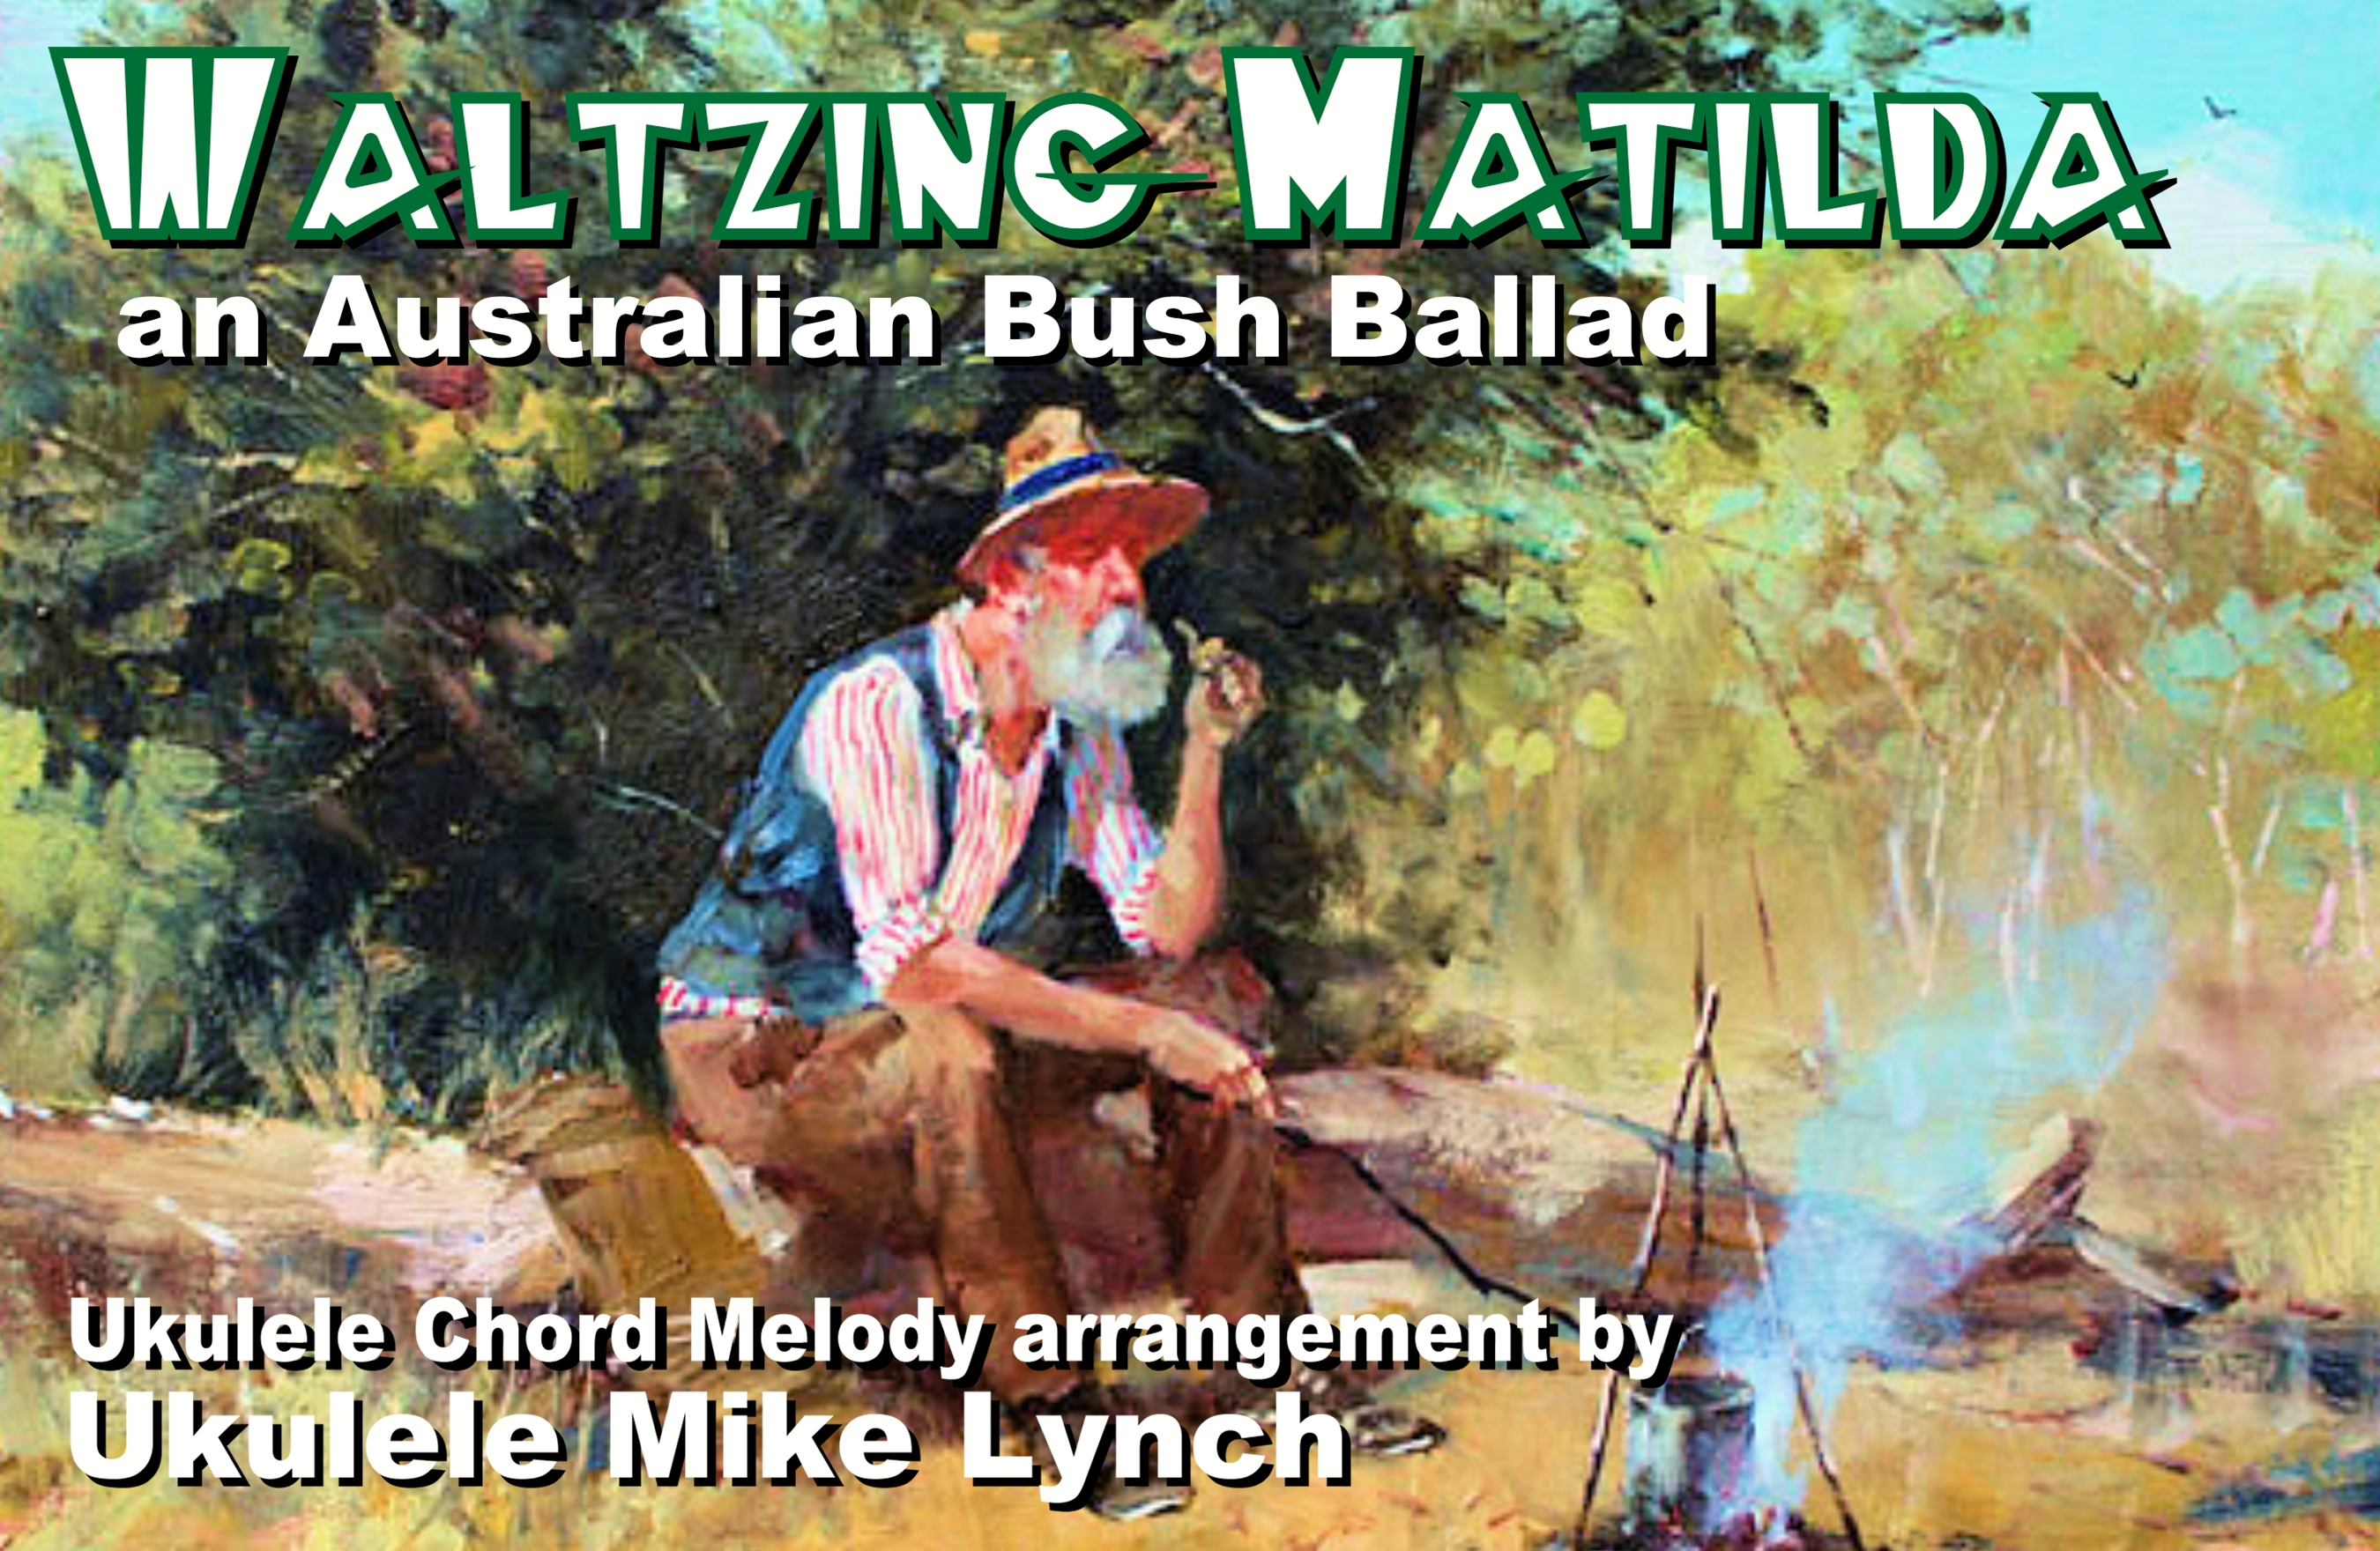 Down Under With Chordmelody Ukulele Waltzing Matilda